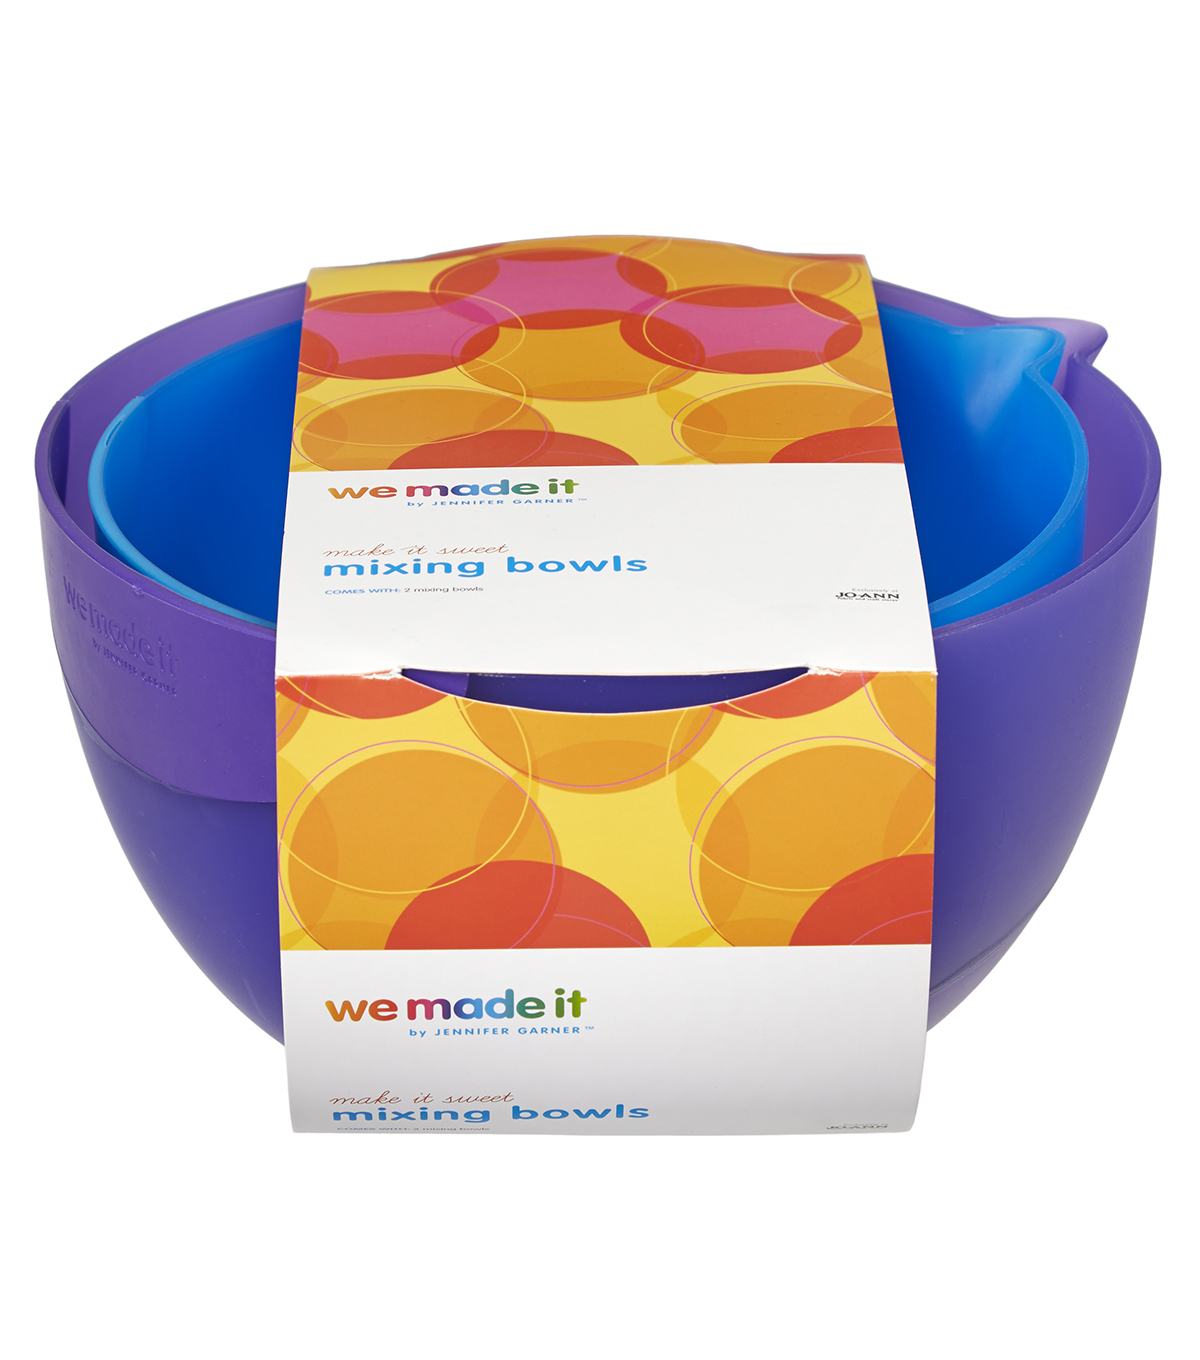 We Made It by Jennifer Garner™ Mixing Bowl Set of 2